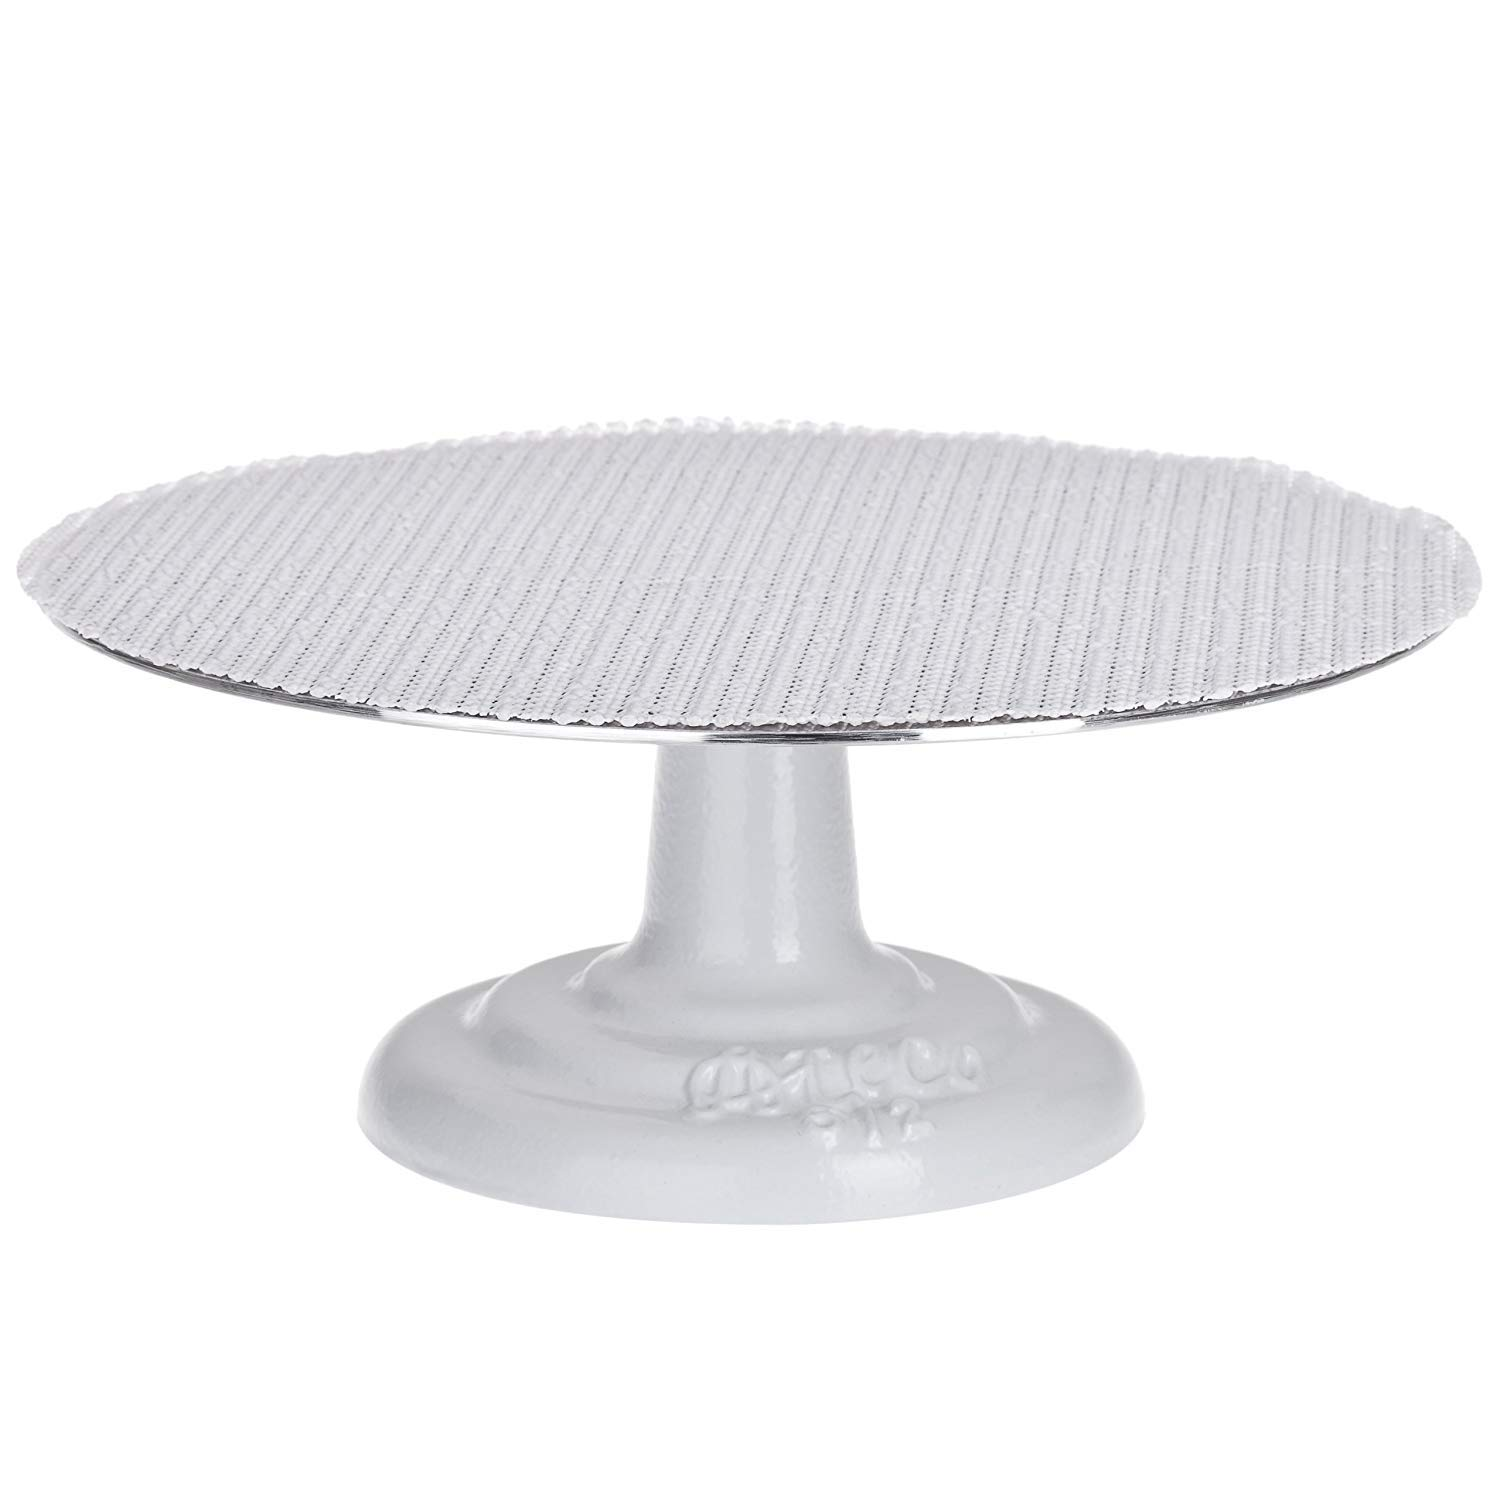 Ateco 612 Pb Revolving Cake Decorating Stand Aluminum Turntable And Cast Iron Base With Non Slip Pad 12 Inch